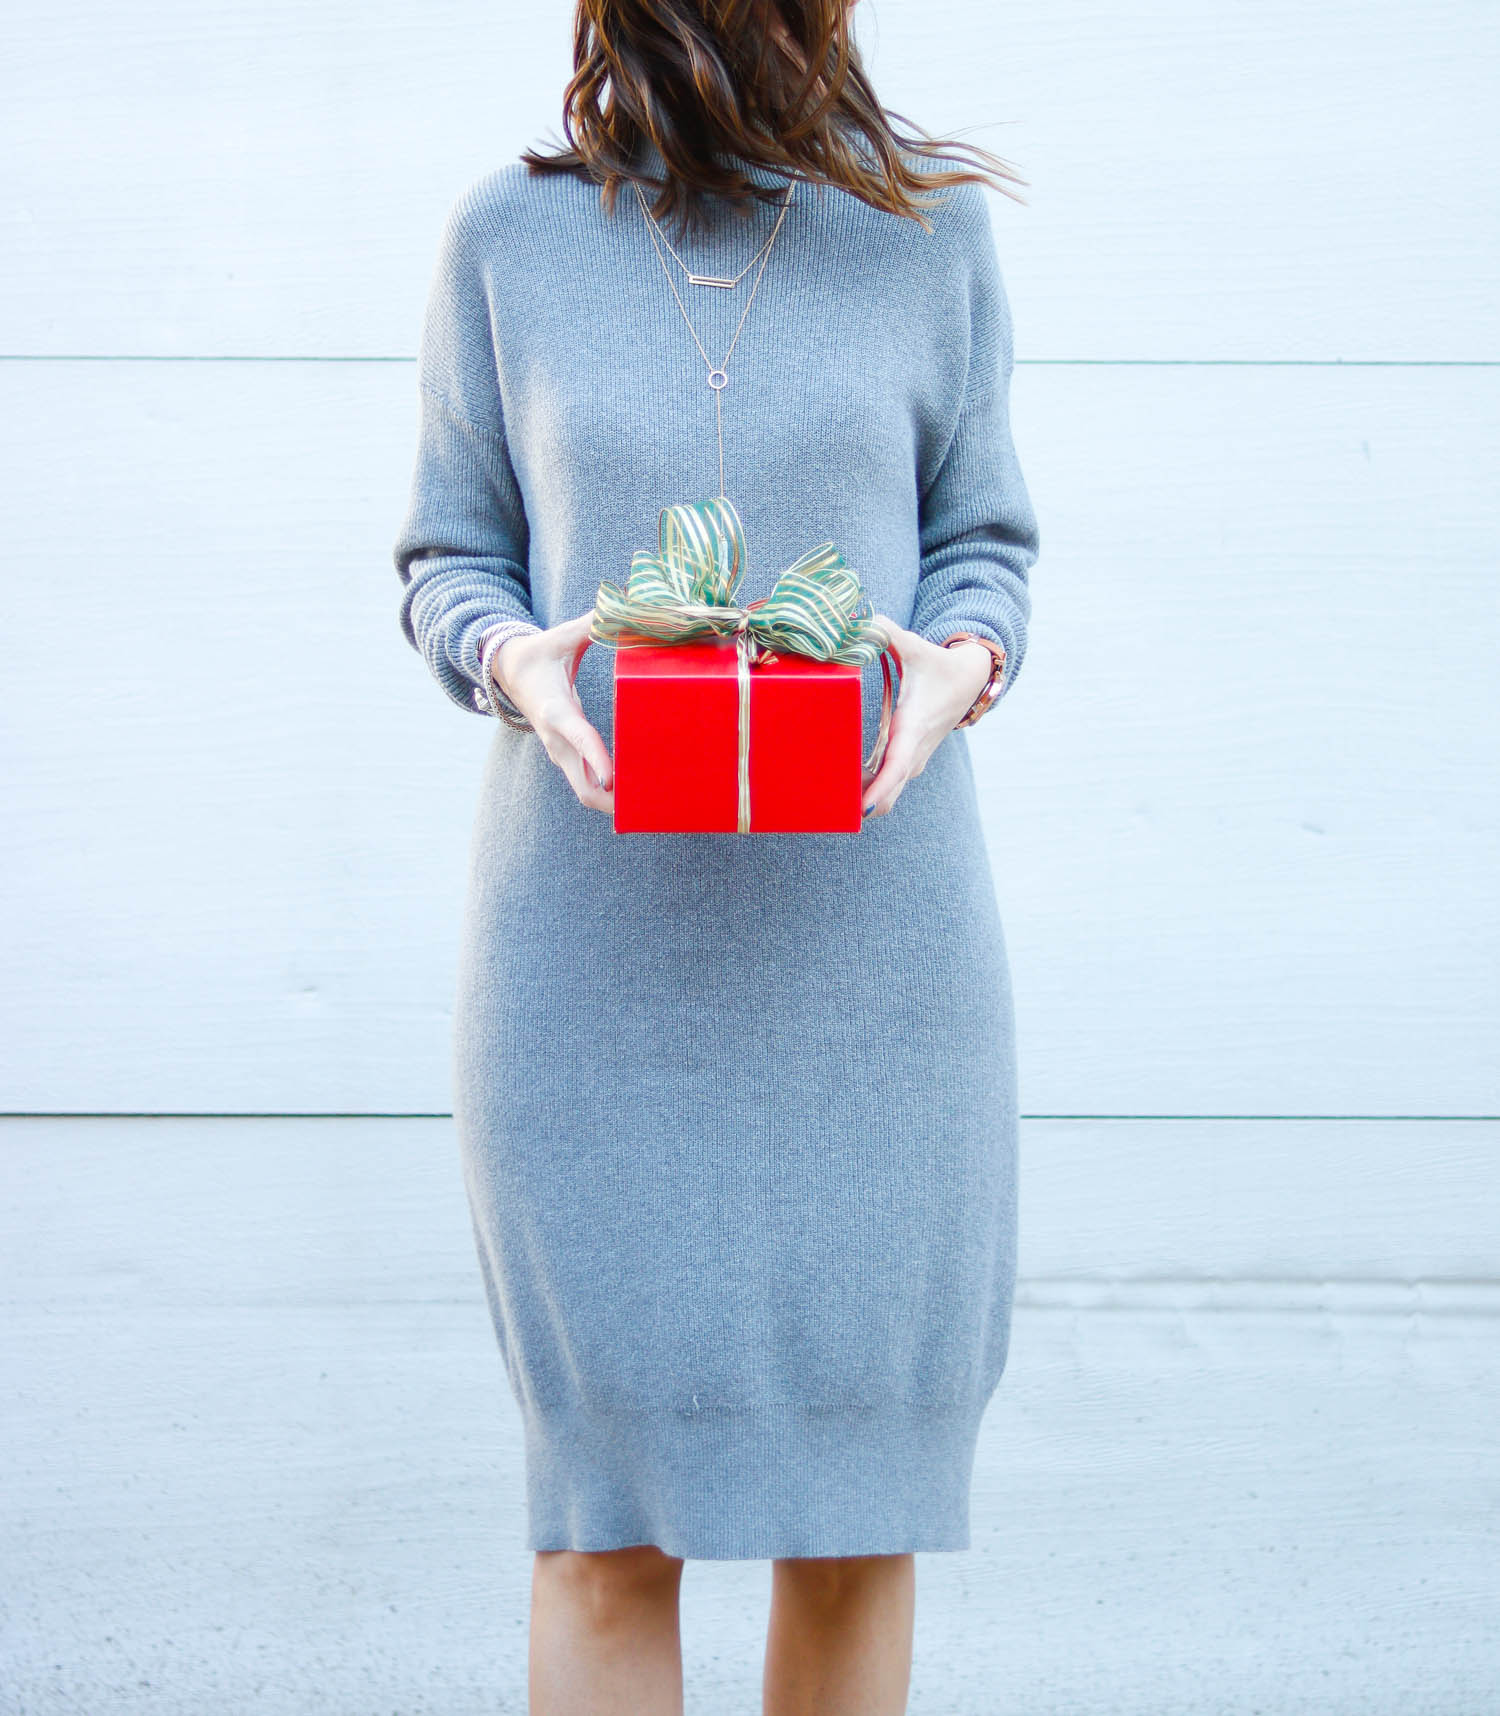 Sweater Dress - Grey Sweater Dress for the Holidays by Washington DC style blogger Cobalt Chronicles